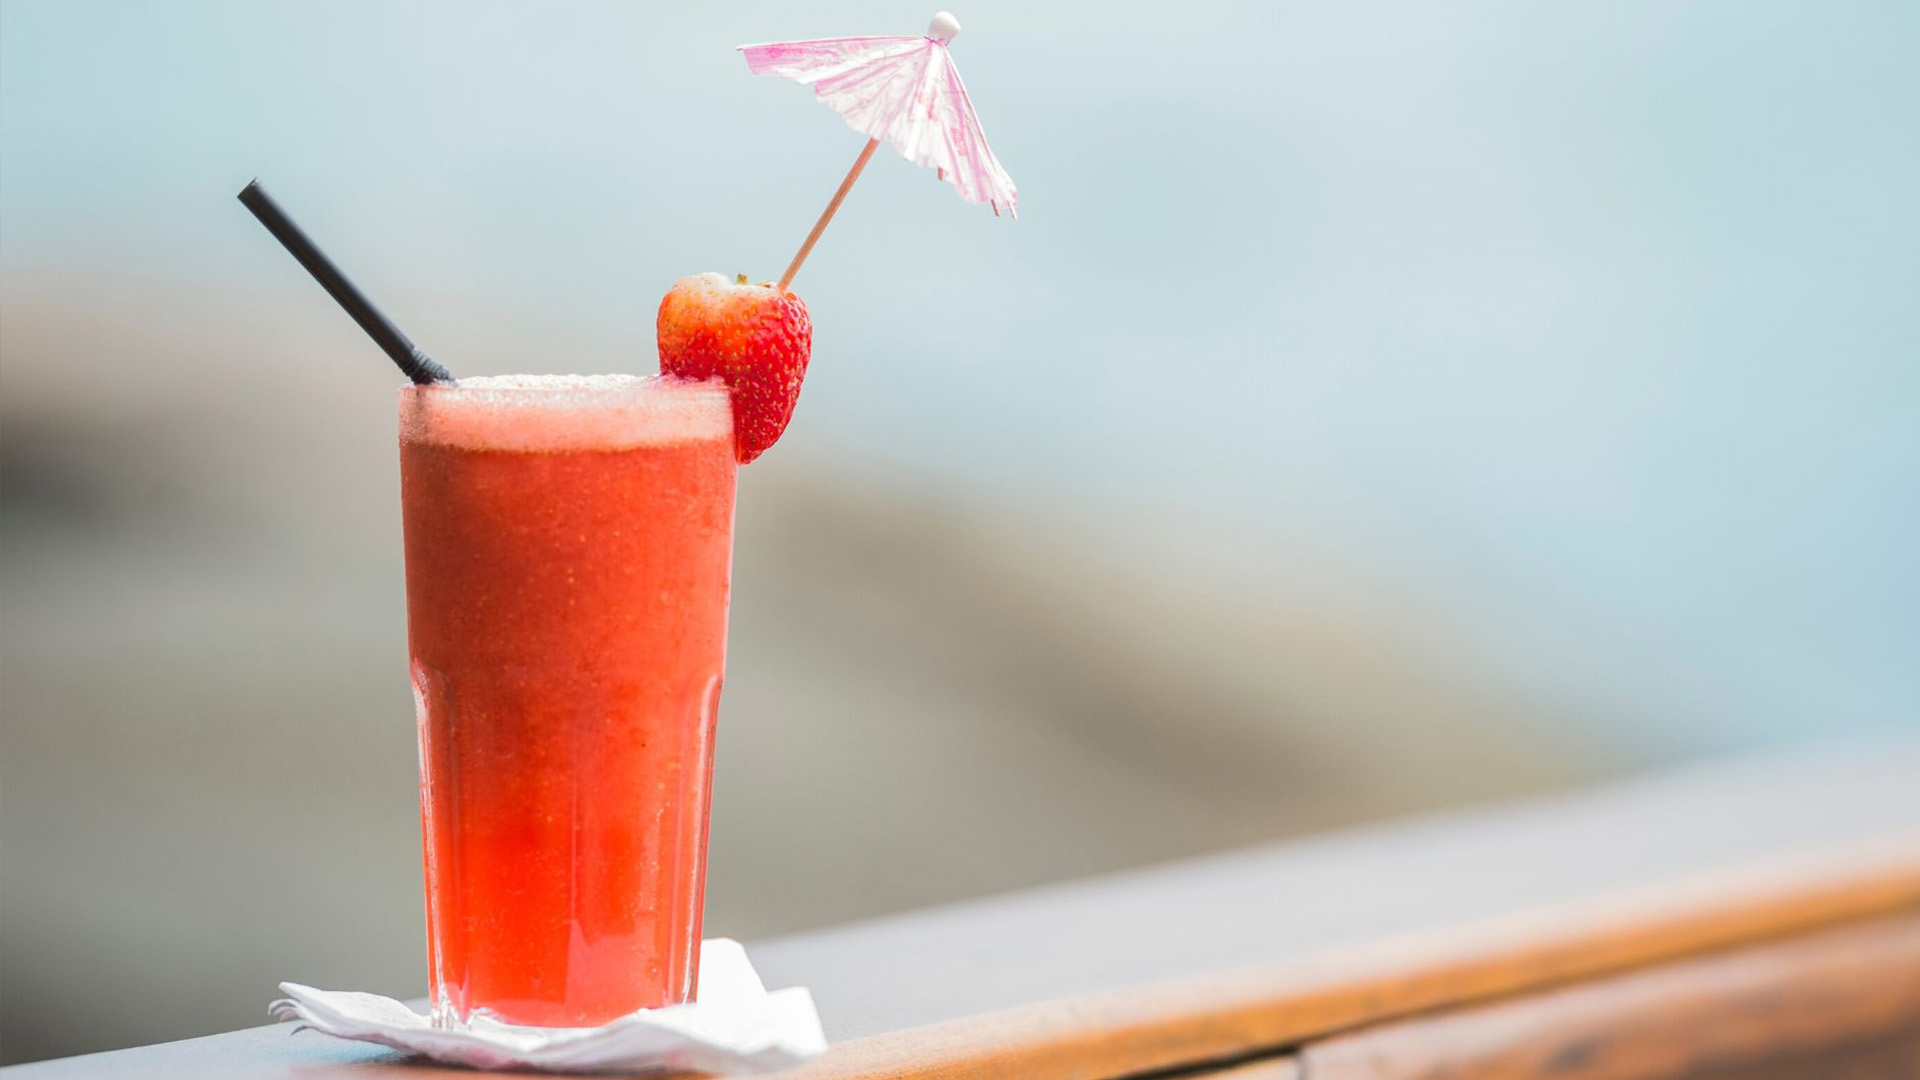 Image of Virgin Strawberry Daiquiri